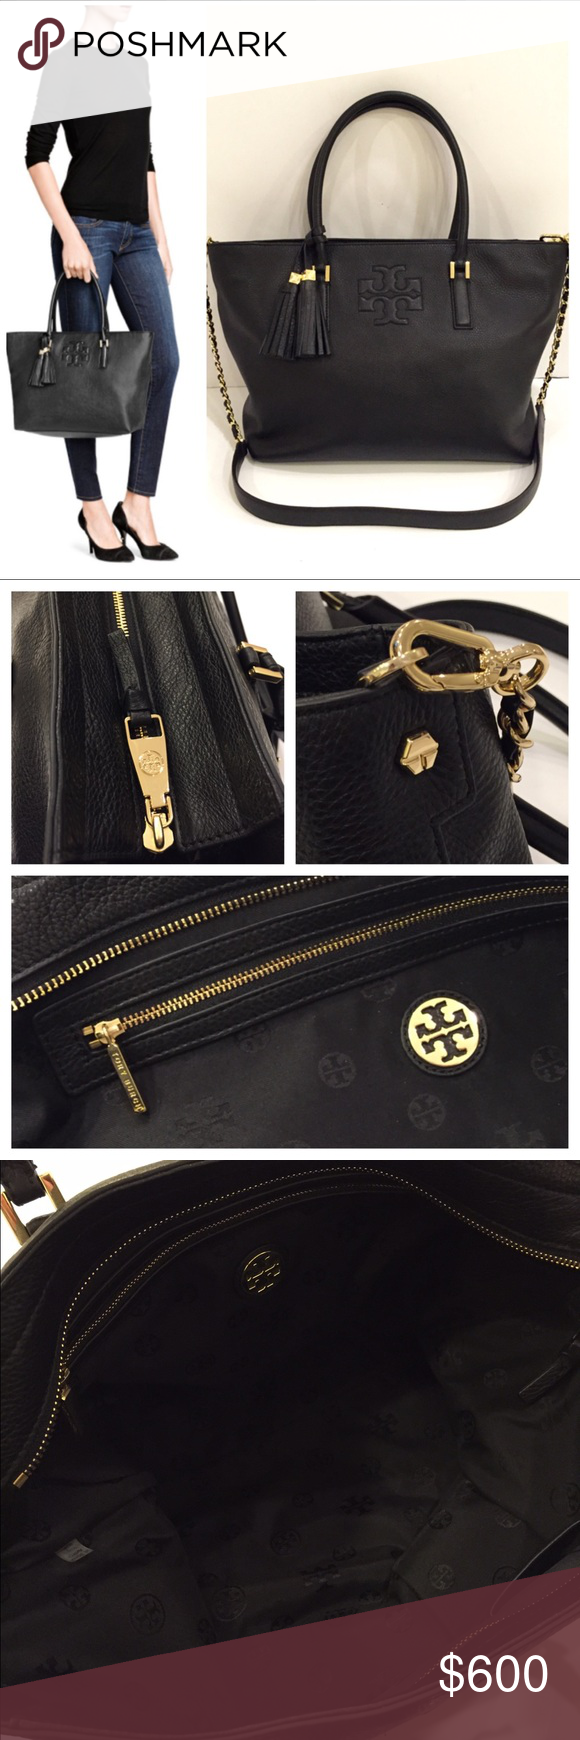 """Tory Burch Large Thea Convertible Tote Crossbody Tory Burch Thea Convertible Tote  Black/ Gold tone hardware   Made of pebbled Italian leather, with an optional cross-body strap for versatility. Designed with ample room for your essentials, a zippered top to keep belongings secure and gold chains for added polish, it's a multi-tasking style that can effortlessly take you from work to weekend.  Width (at base): 14"""" Height: 12"""" Depth: 5.25"""" Handle Drop: 7"""" Shoulder Strap Drop: 23""""    Excellent…"""